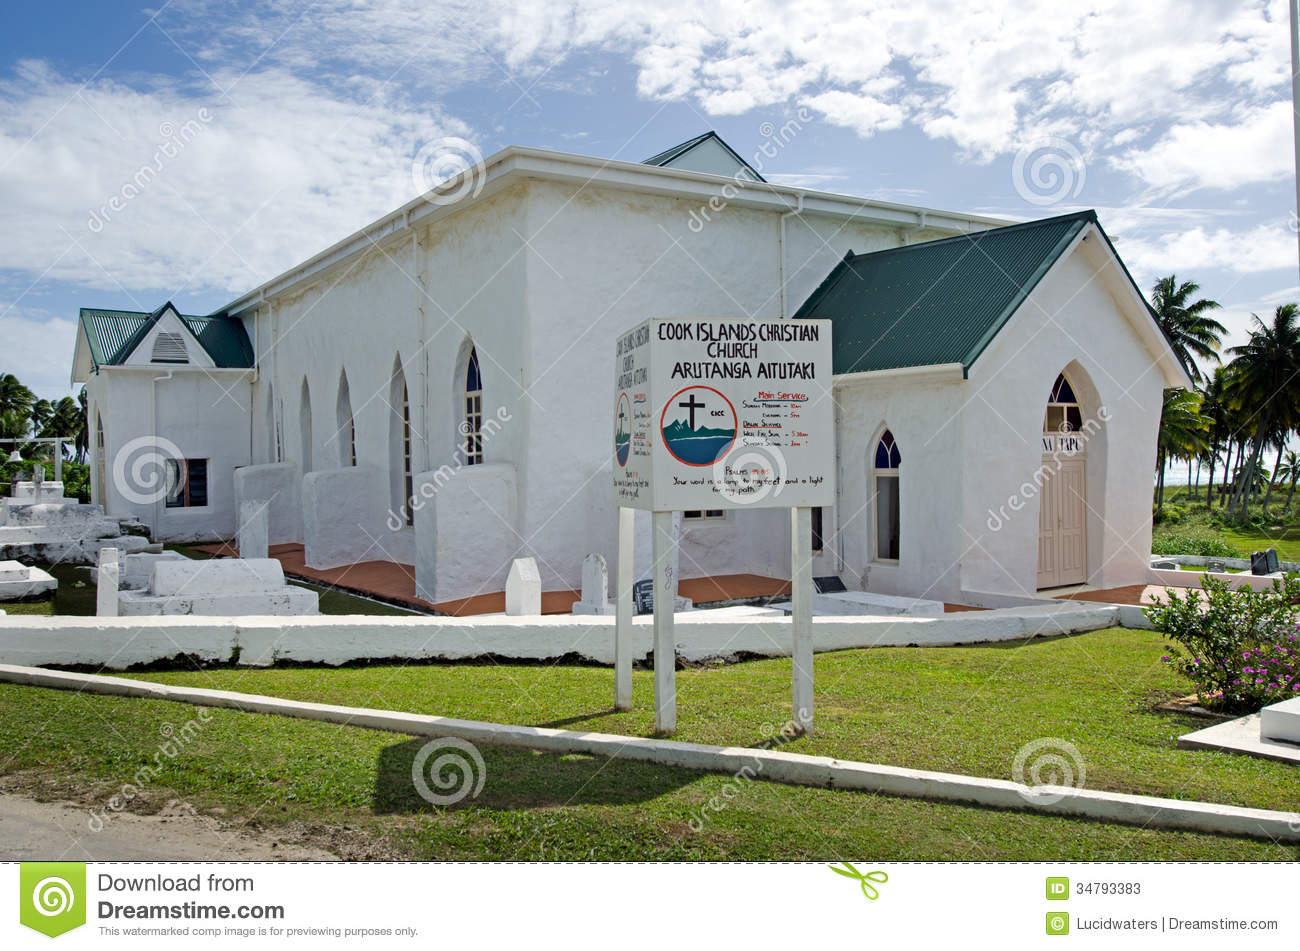 cook islands christian church  cicc  in aitutaki lagoon dog sunbathing clipart sunbathing clipart free